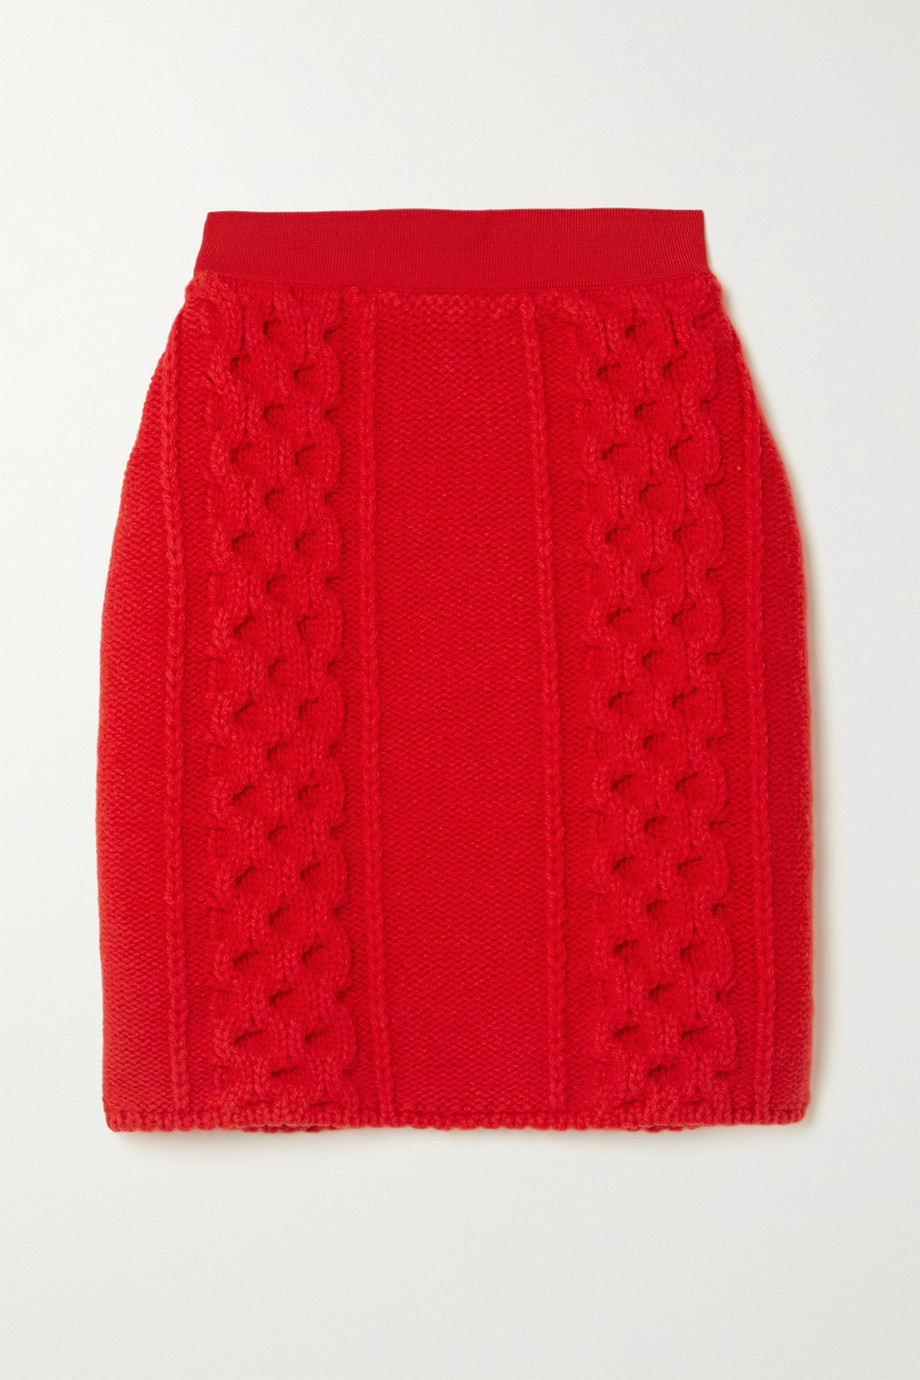 Bottega Veneta Cable-knit wool and cotton-blend mini skirt